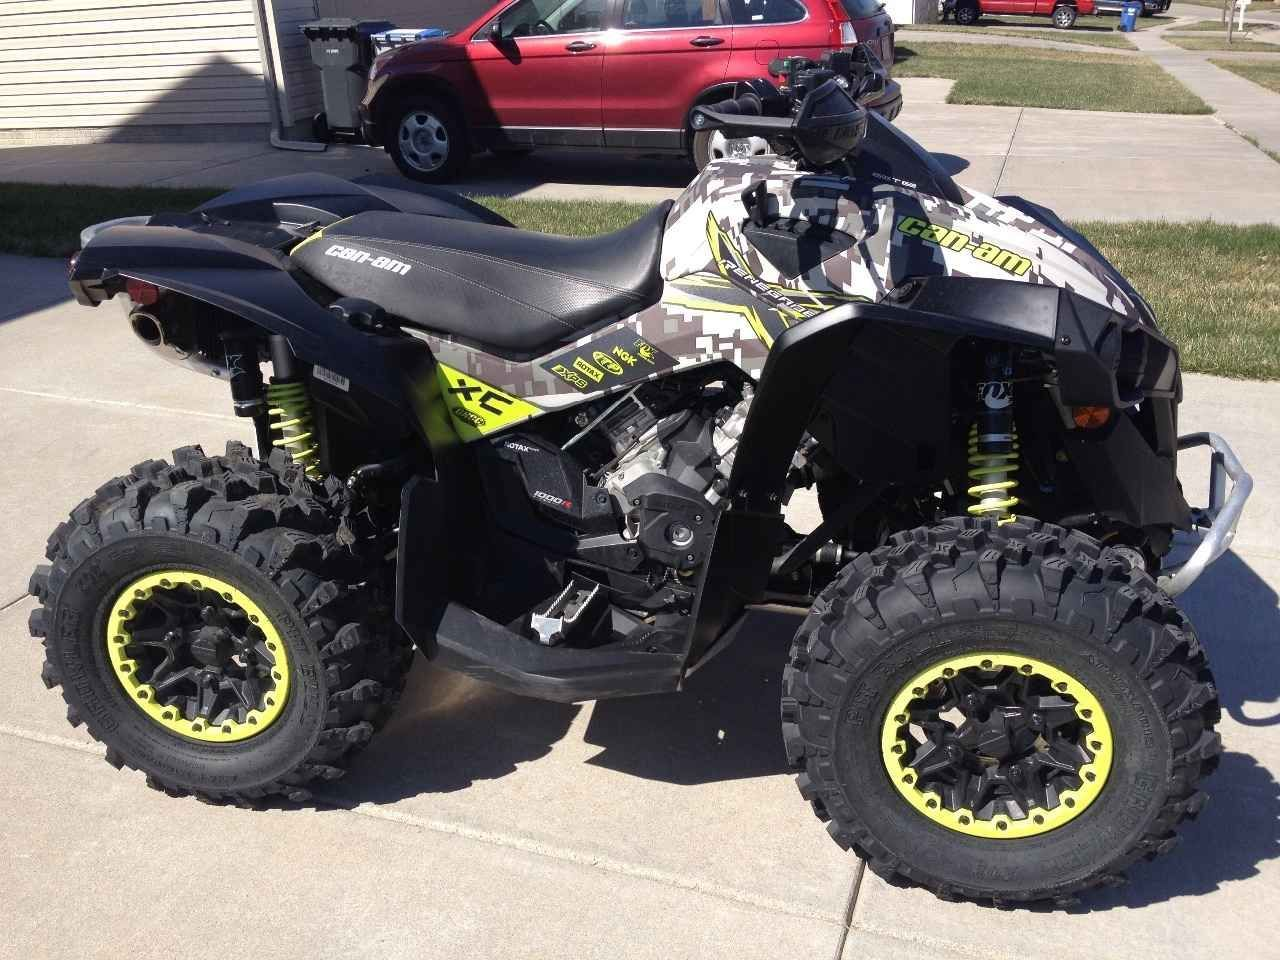 Used 2016 Can Am Renegade X Xc 1000 Atvs For Sale In Nebraska 2016 Can Am Renegade 1000r X Xc With 13 Hours Like New Has Y Four Wheelers For Sale Can Am Atv